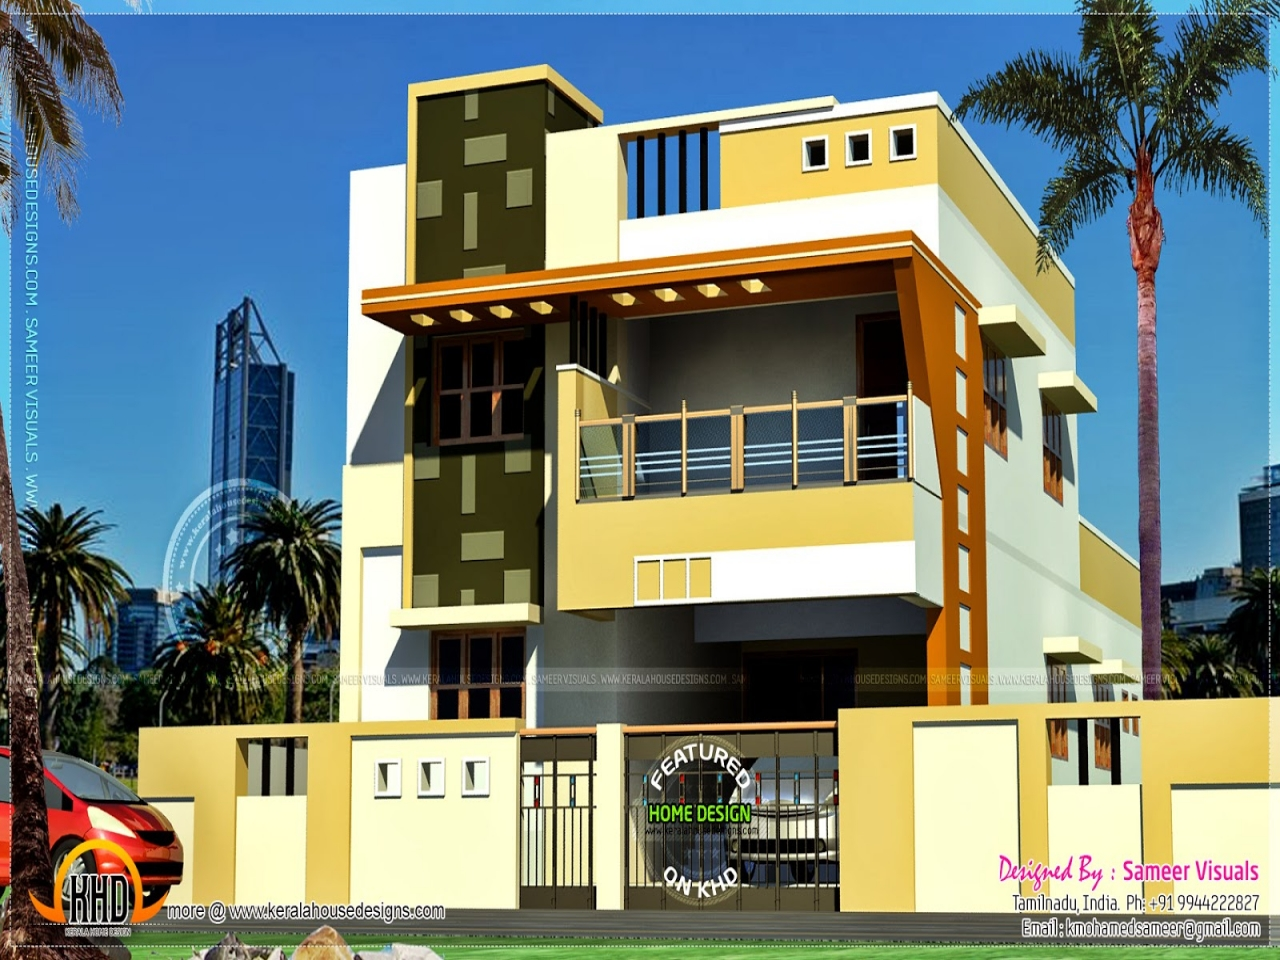 Kerala home design modern indian home design contemporary for Contemporary home designs india